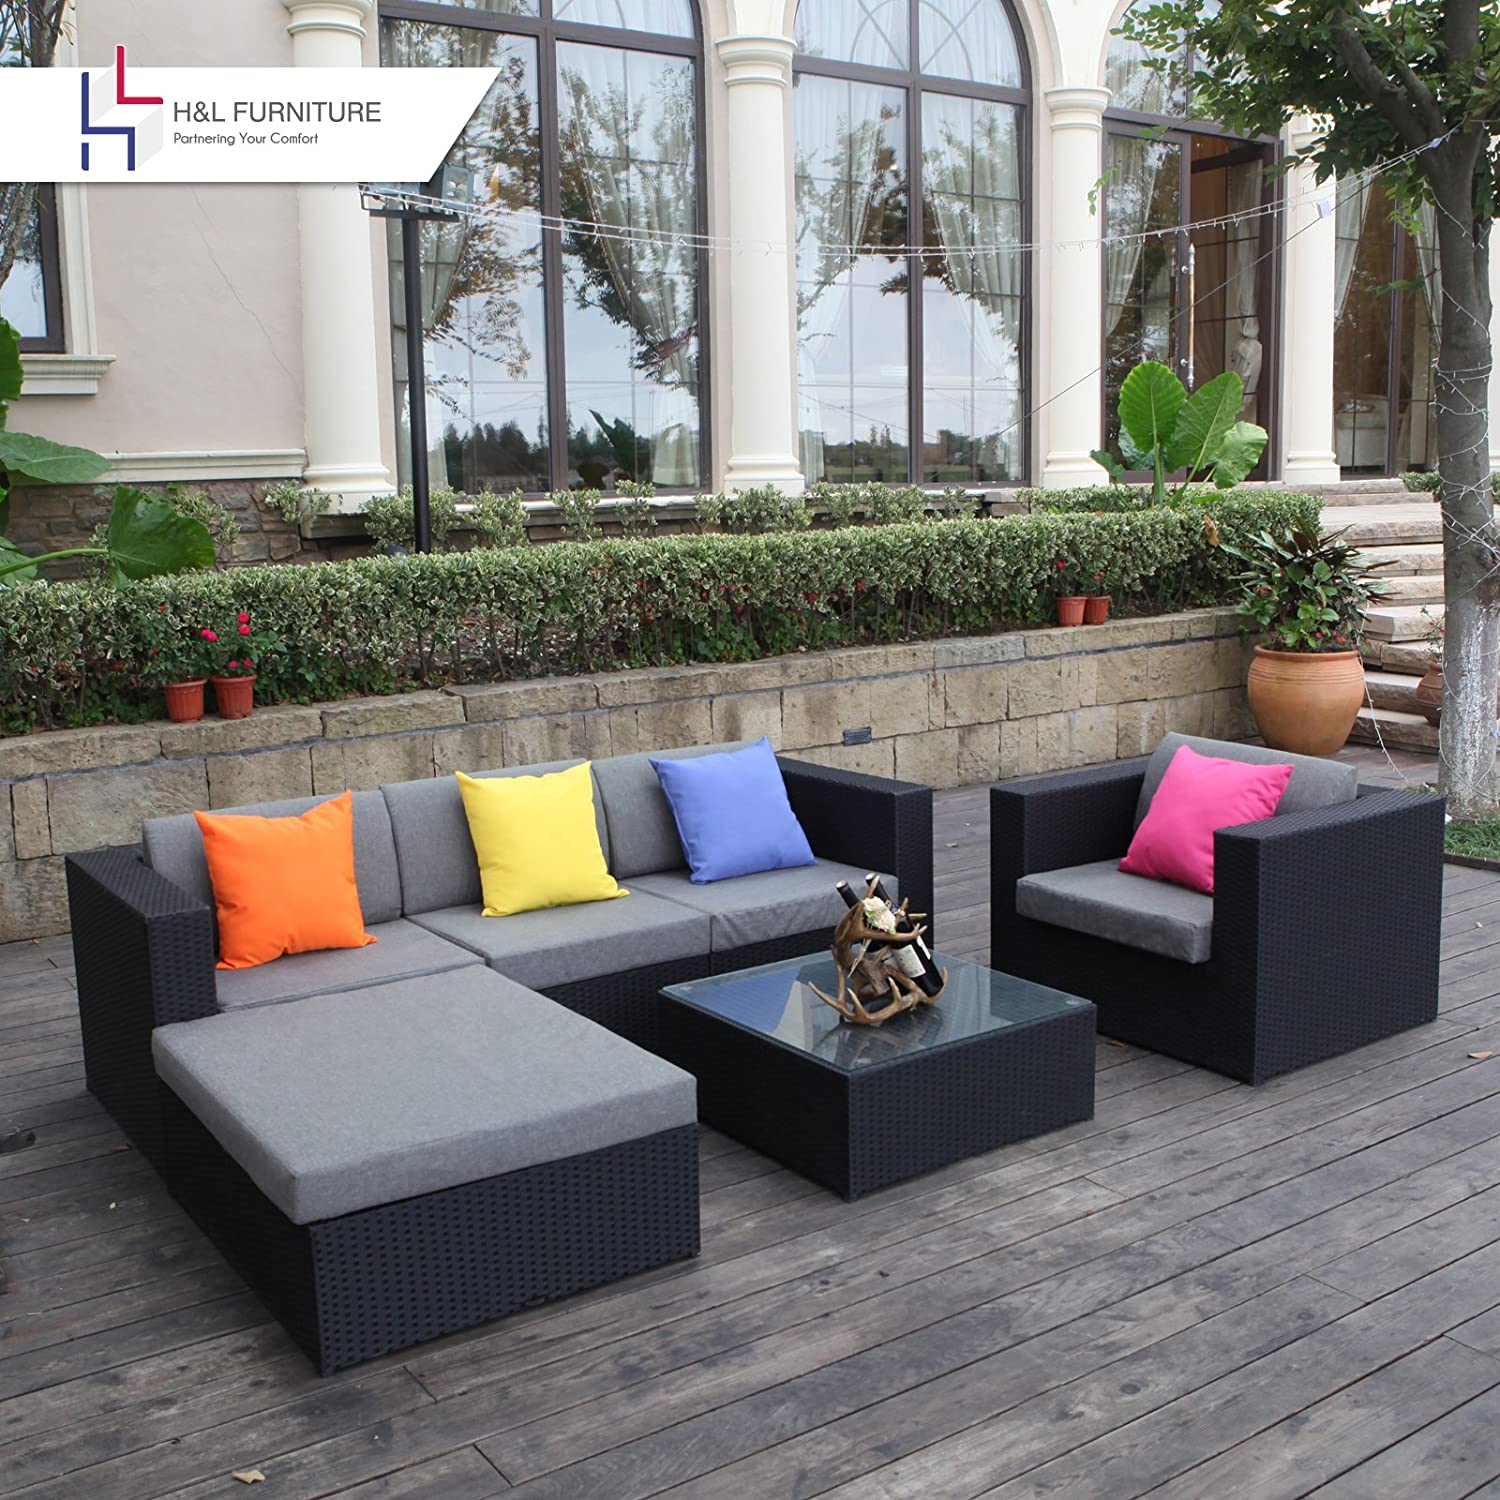 Amazon H&L Patio 6PCS Rattan Wicker Sofa Set Outdoor Garden